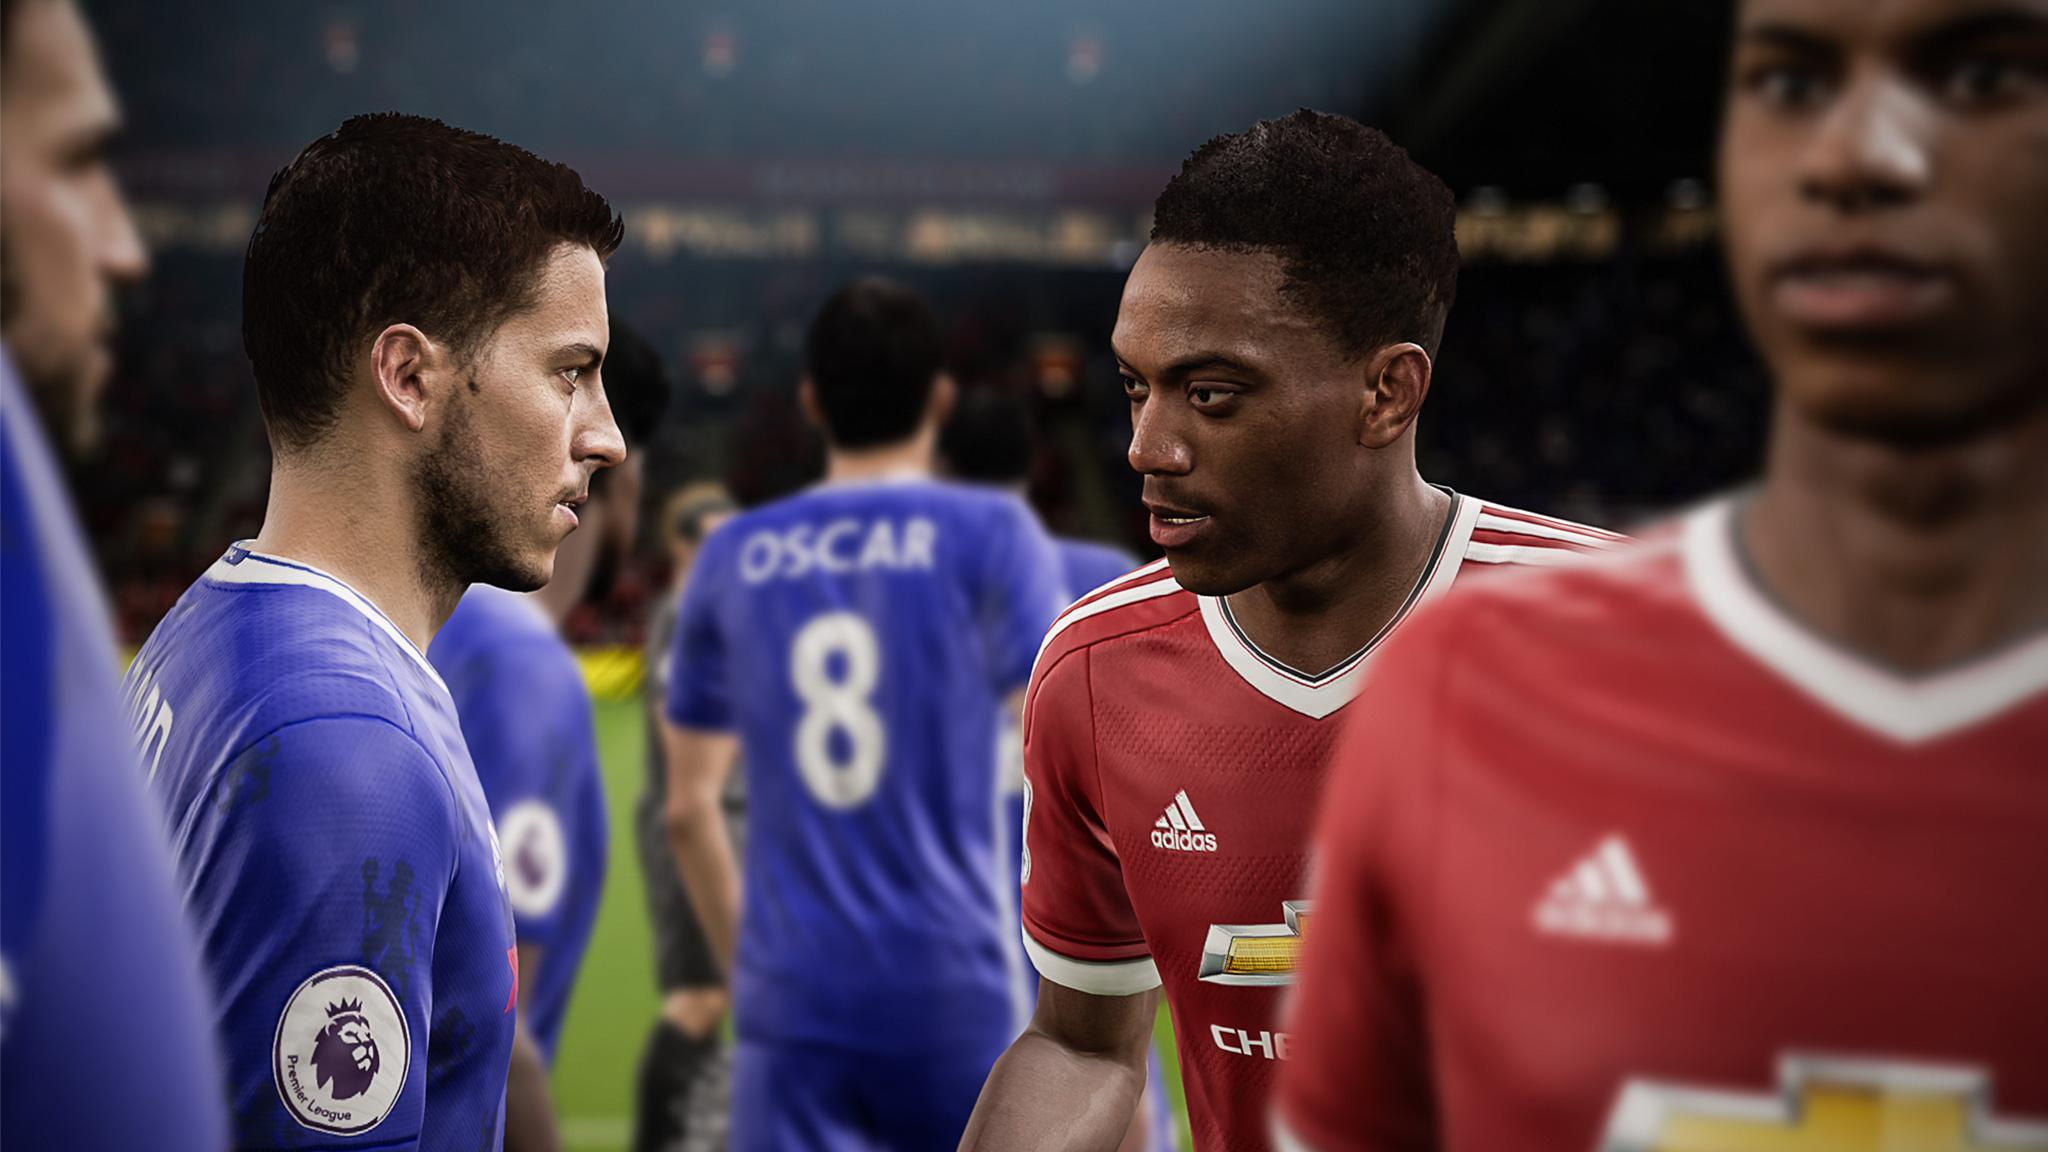 FIFA 17 looked the part, but the Frostbite Engine is means of so much more